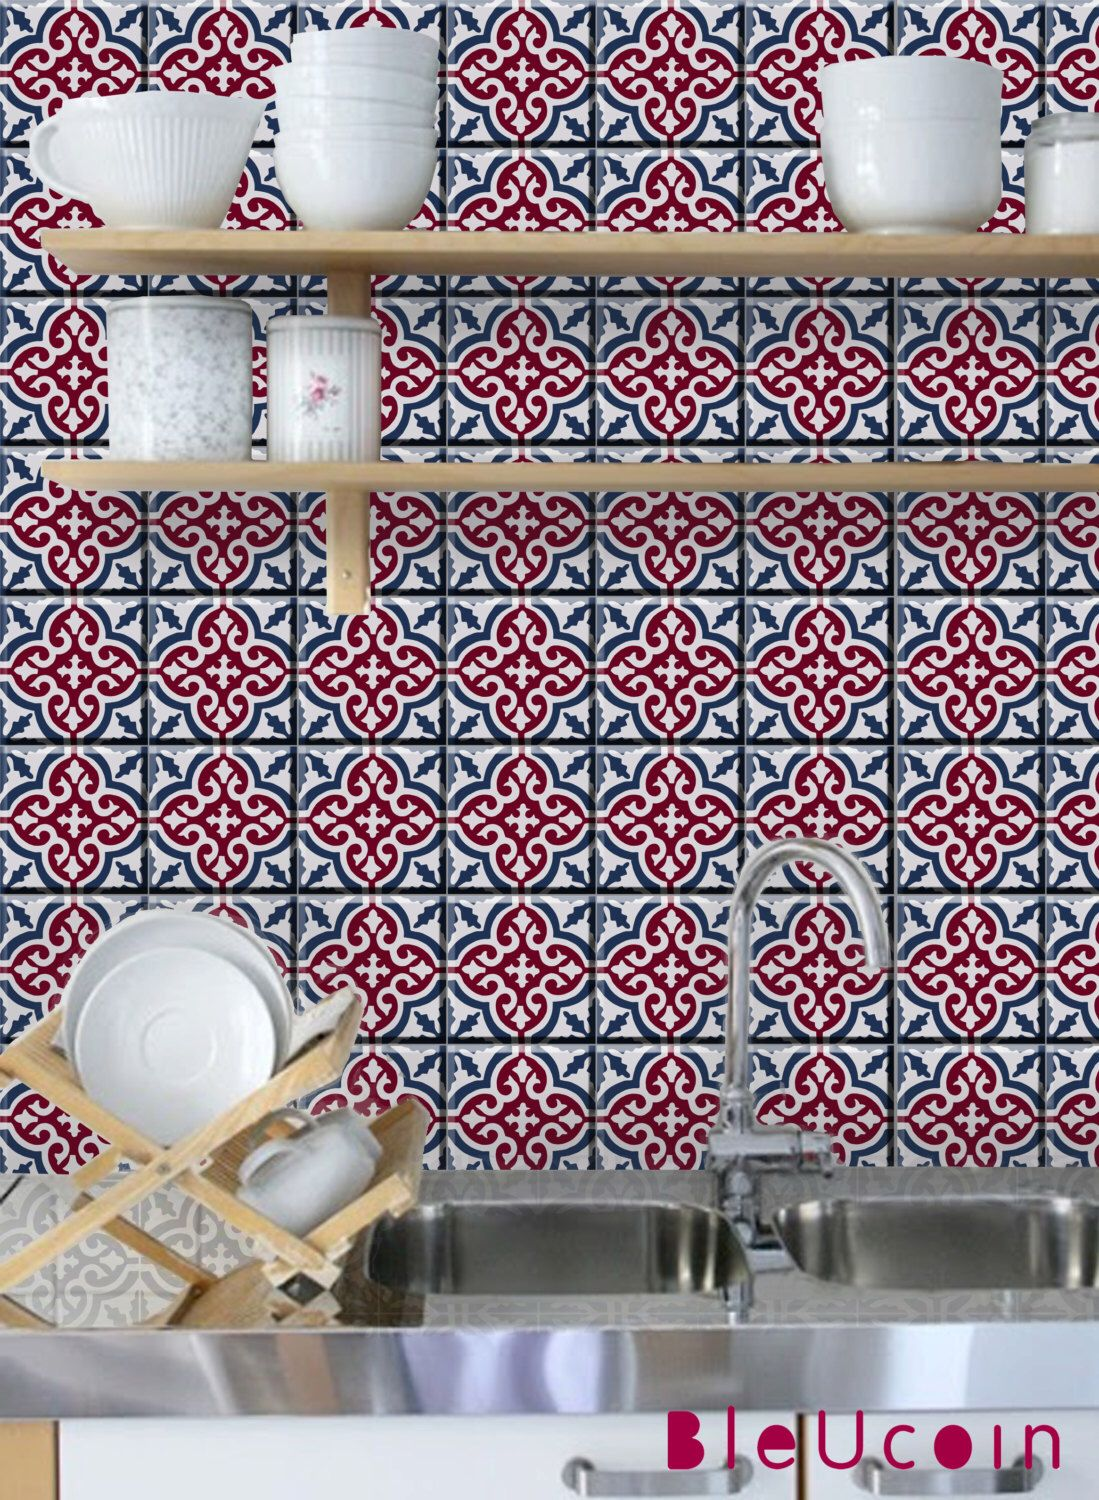 Tile Wall Decal Moroccan Pattern Sangria Red With Navy Blue 44 Pcs By Bleucoin On Etsy